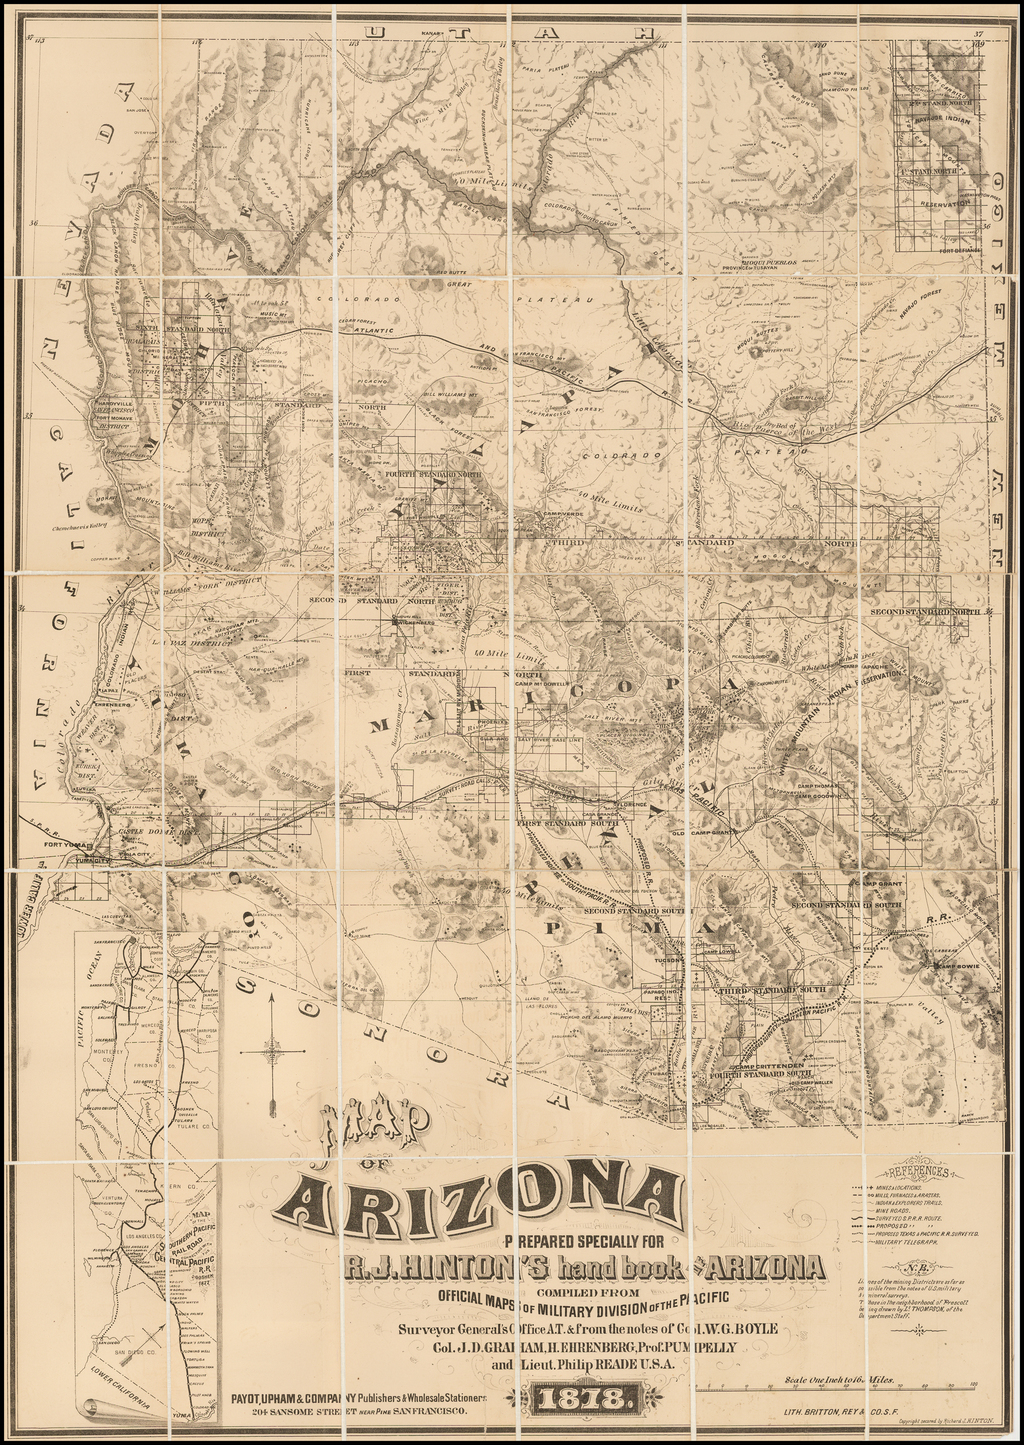 Map of Arizona Prepared Specially for R.J. Hinton's hand book of Arizona Compiled From Official Maps of Military Dvision of the Pacific Surveyor General's Office A.T. & from the notes of Col. W.G. Boyle Col. J.D. Graham, H. Ehrenberg, Prof. Pumpelly and Lieut. Philip Reade USA . . . 1878 By Richard J. Hinton